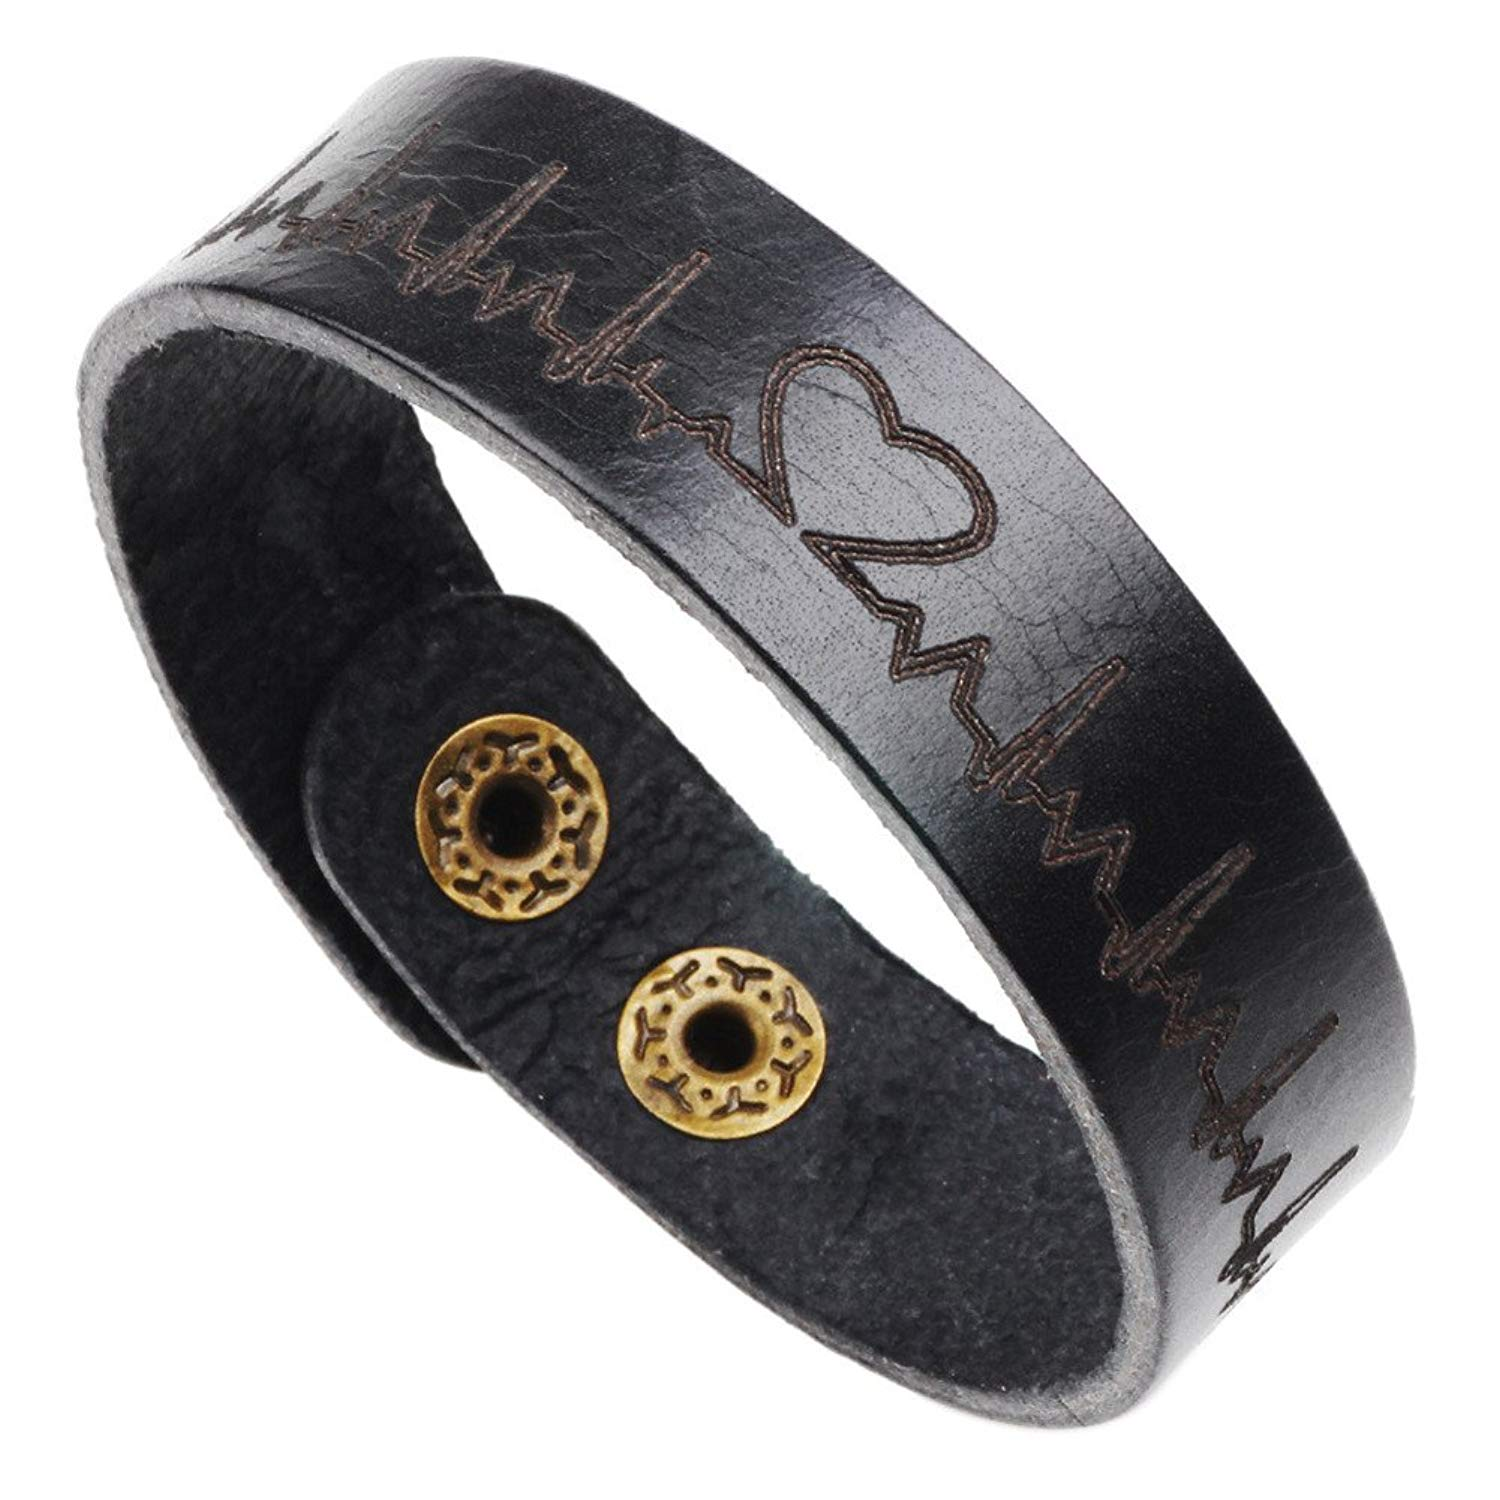 Get Quotations LiFashion LF Mens Handmade Black Cowhide Leather Heartbeat Wristband Heart Beat Stethoscope Love Adjustable Bracelet For